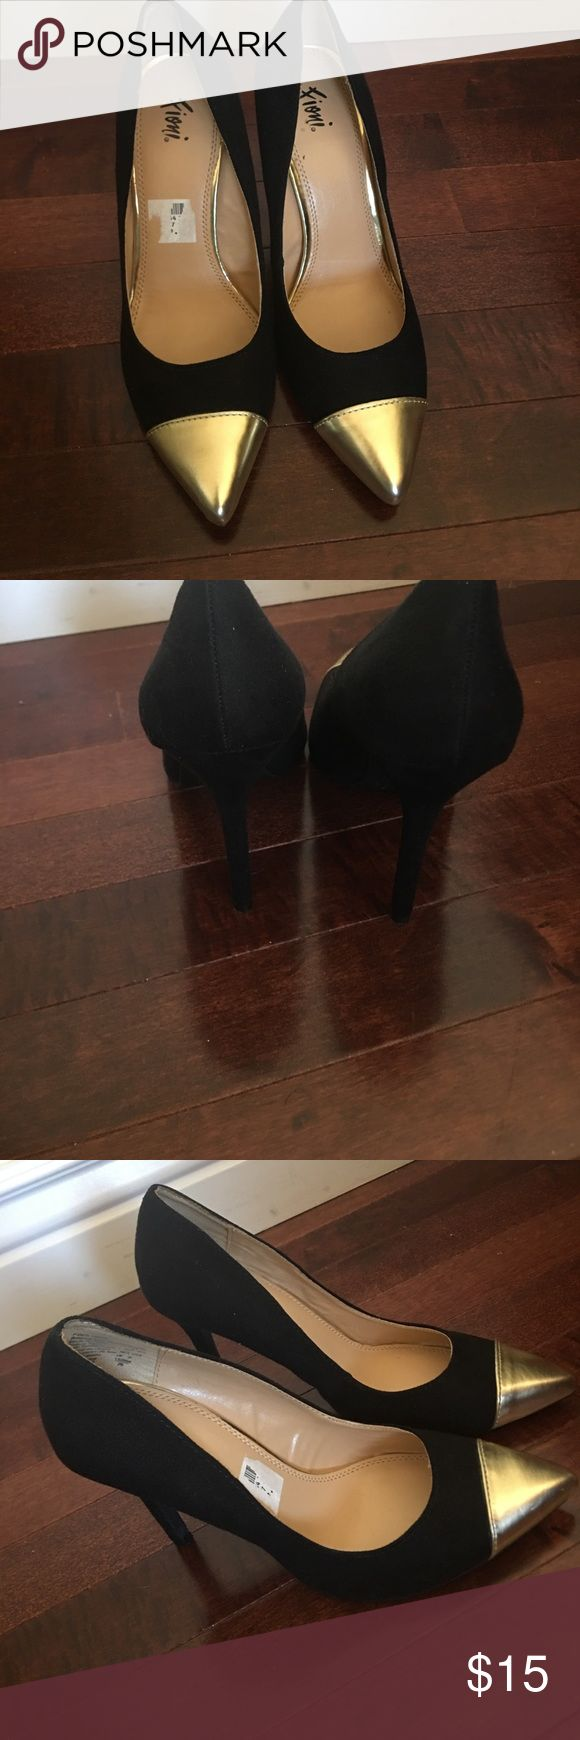 Fioni Heels with gold tip Almost brand new like pointed toe pumps.  only worn twice. They are perfect for parties, high heels and pointed toe. Purchased them from payless shoe source Payless Shoes Heels